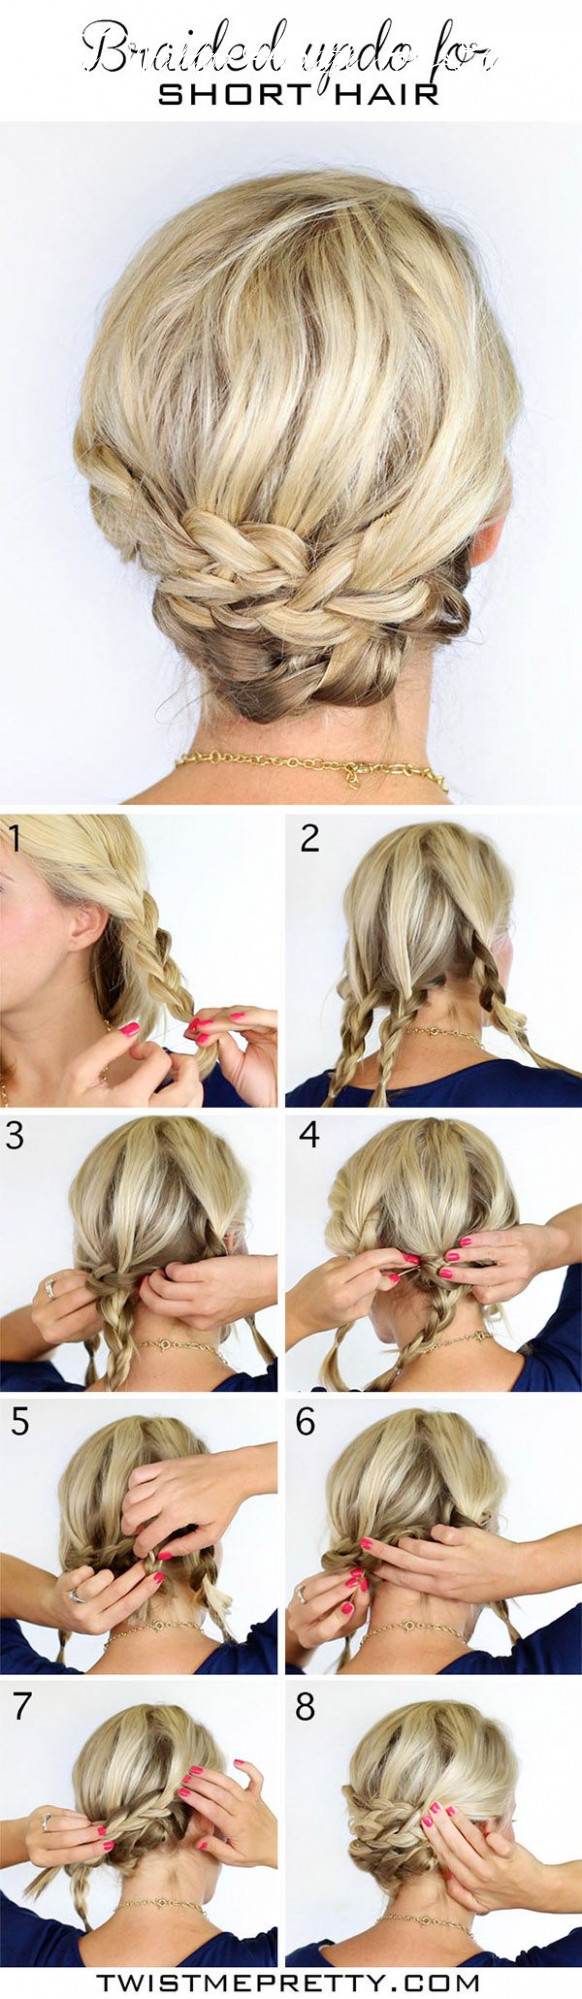 8 diy wedding hairstyles with tutorials to try on your own